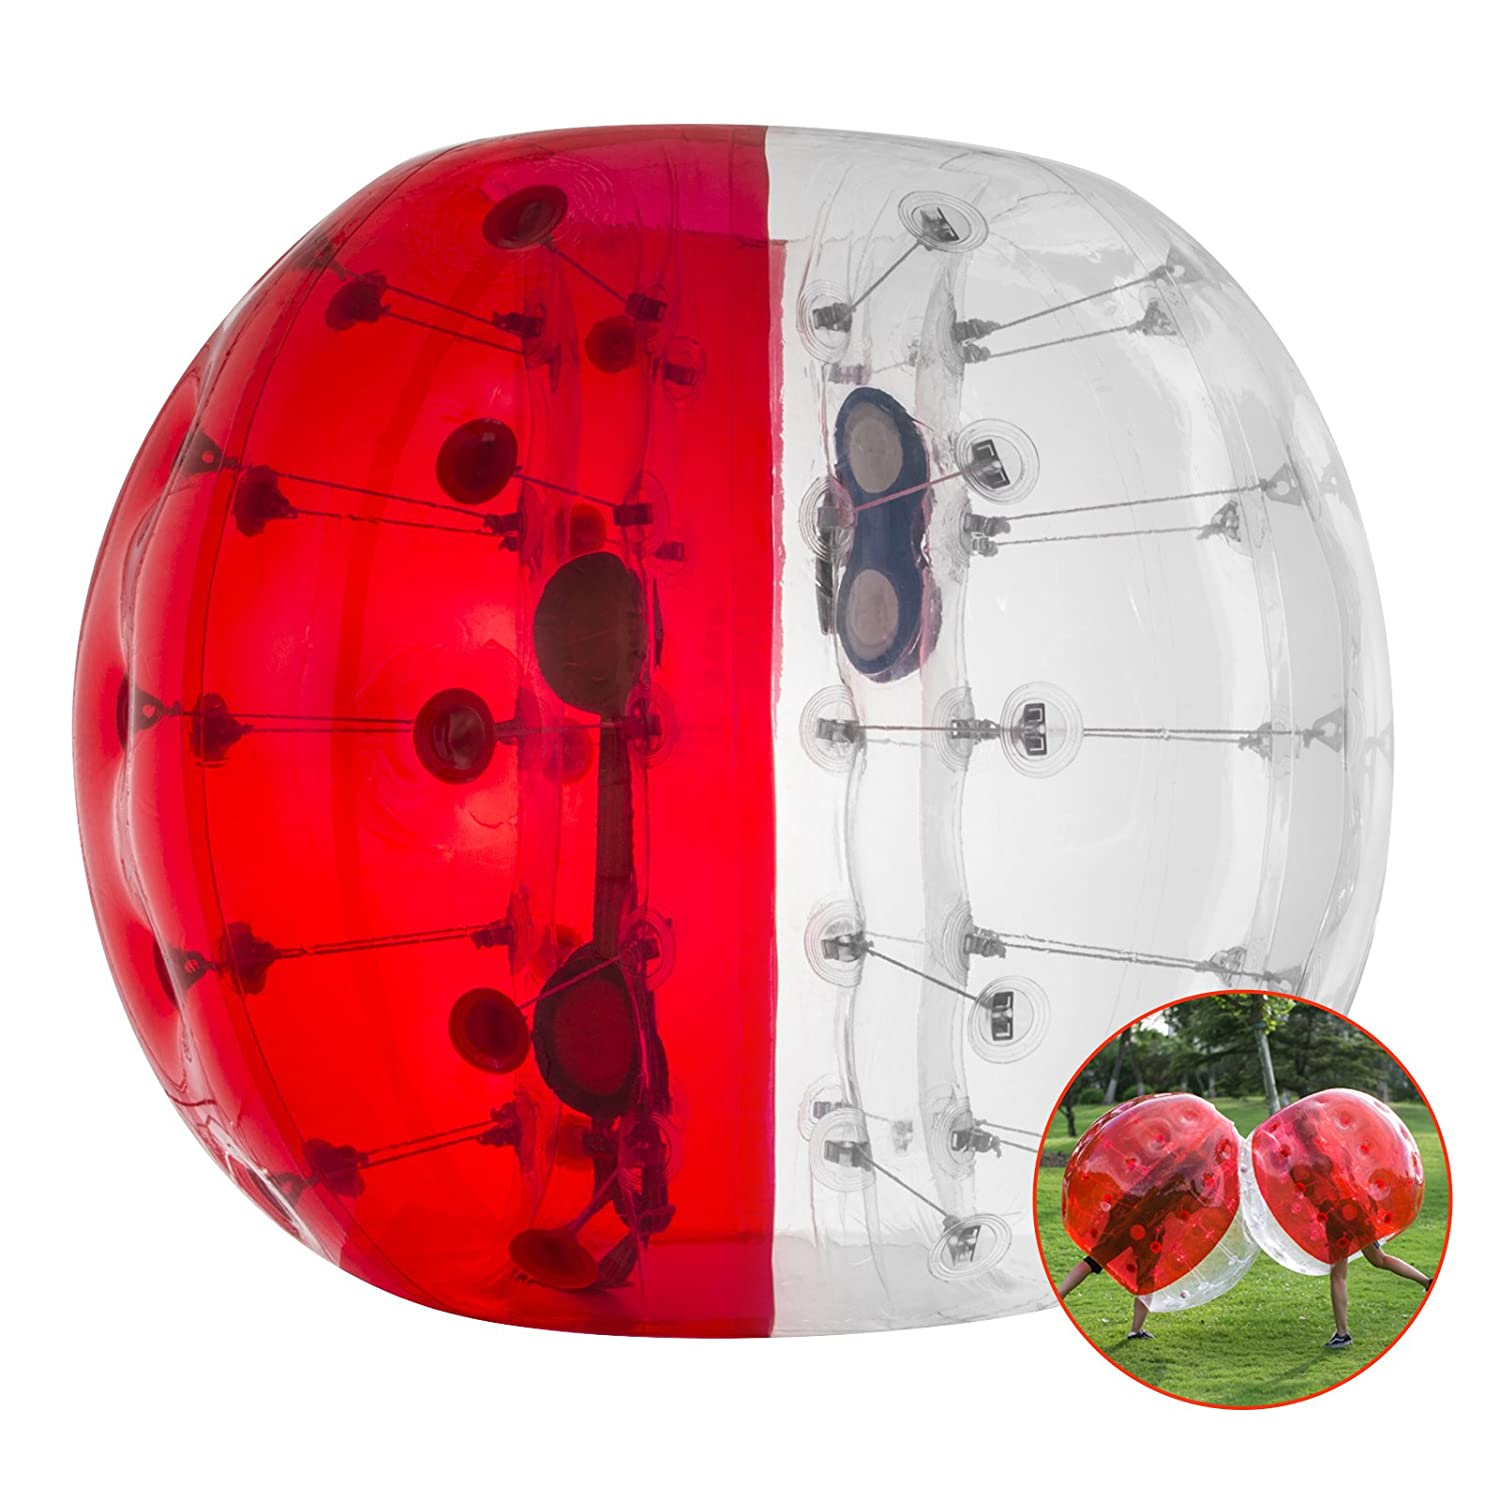 Happybuy Inflatable Bumper Ball 1.2M//4ft 1.5M//5ft Diameter Bubble Soccer Ball Blow Up Toy in 5 Min Inflatable Bumper Bubble Balls for Adults or Child